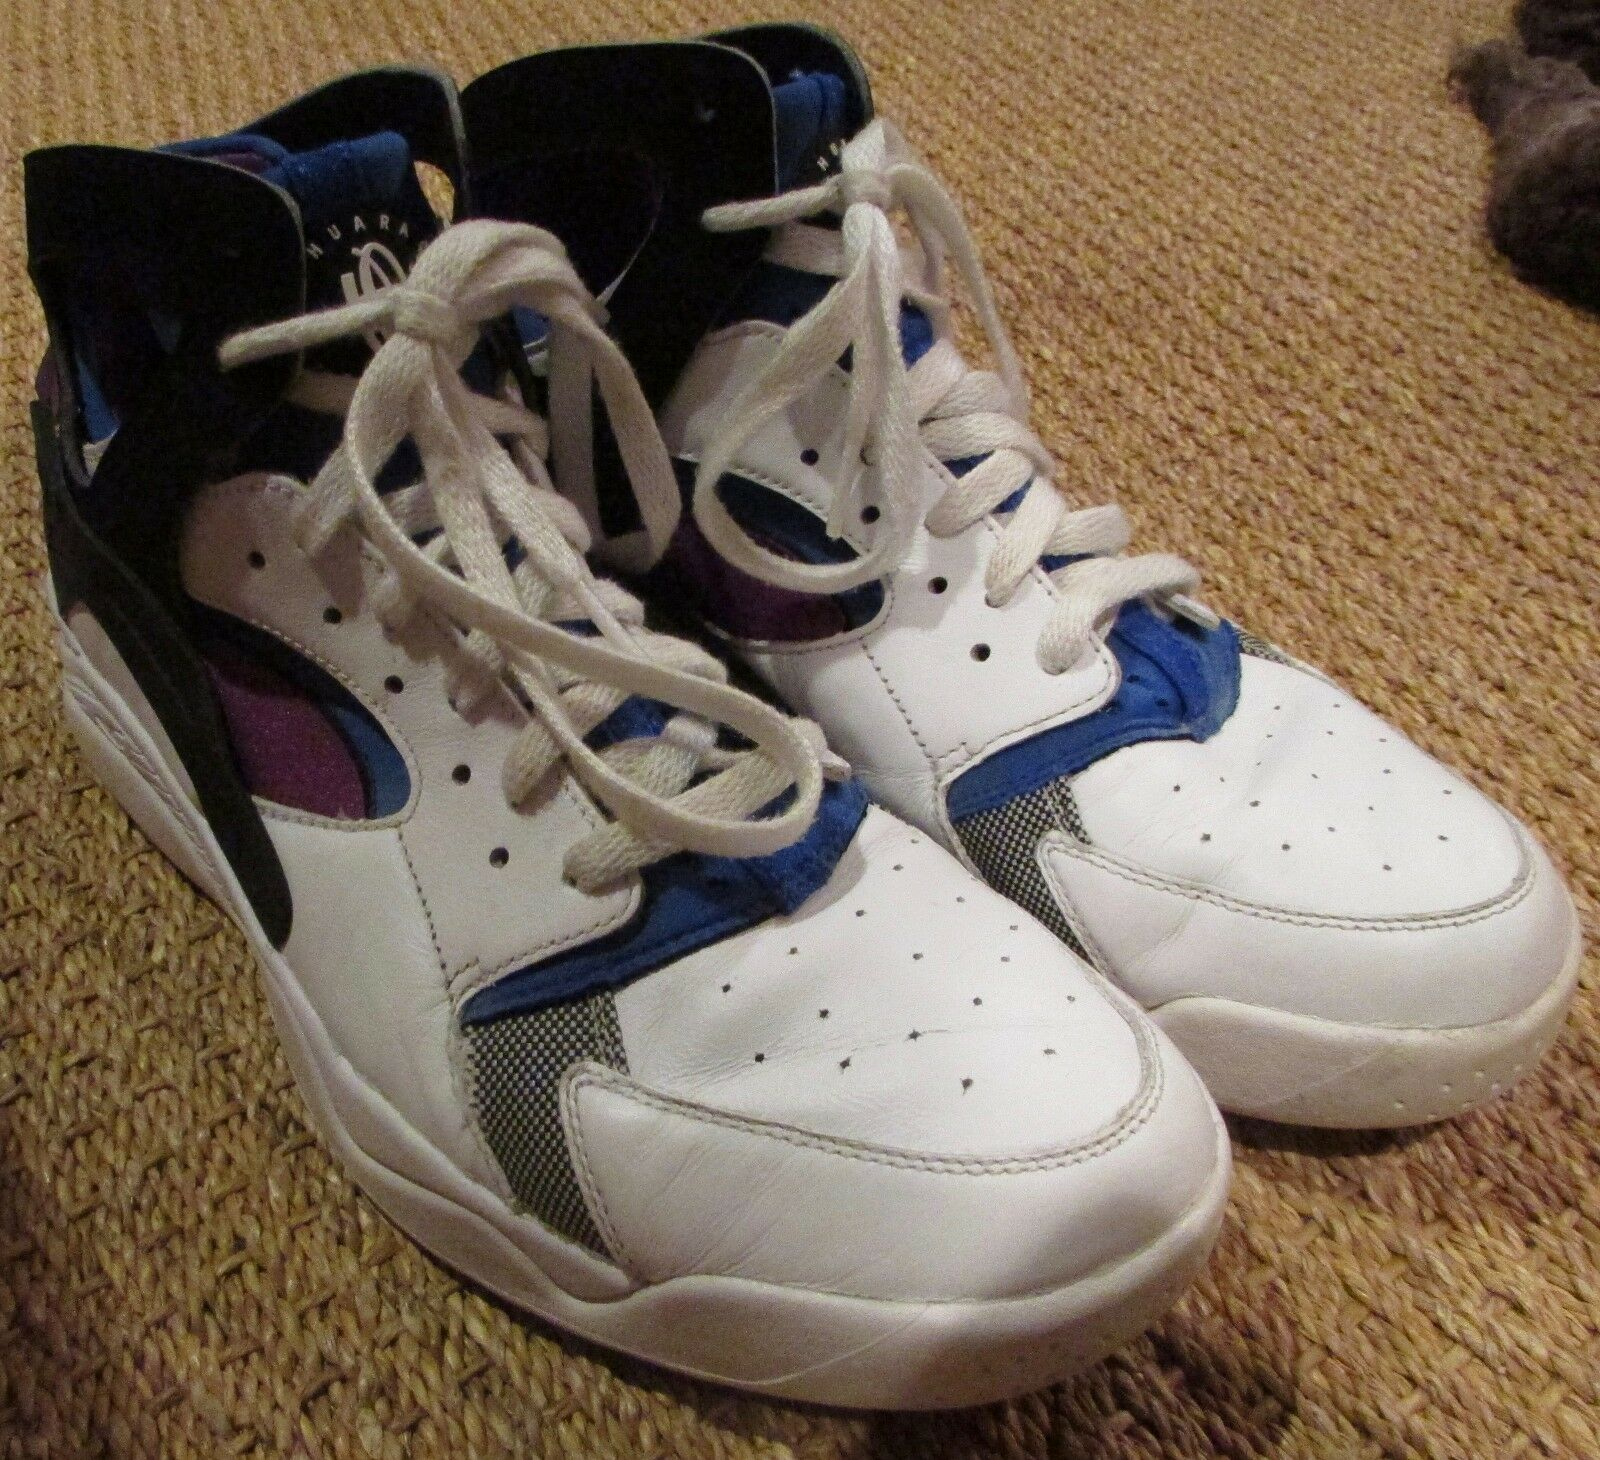 Nike Air Flight Huarache Prem QS Basketball shoes 686203-100 Size 10